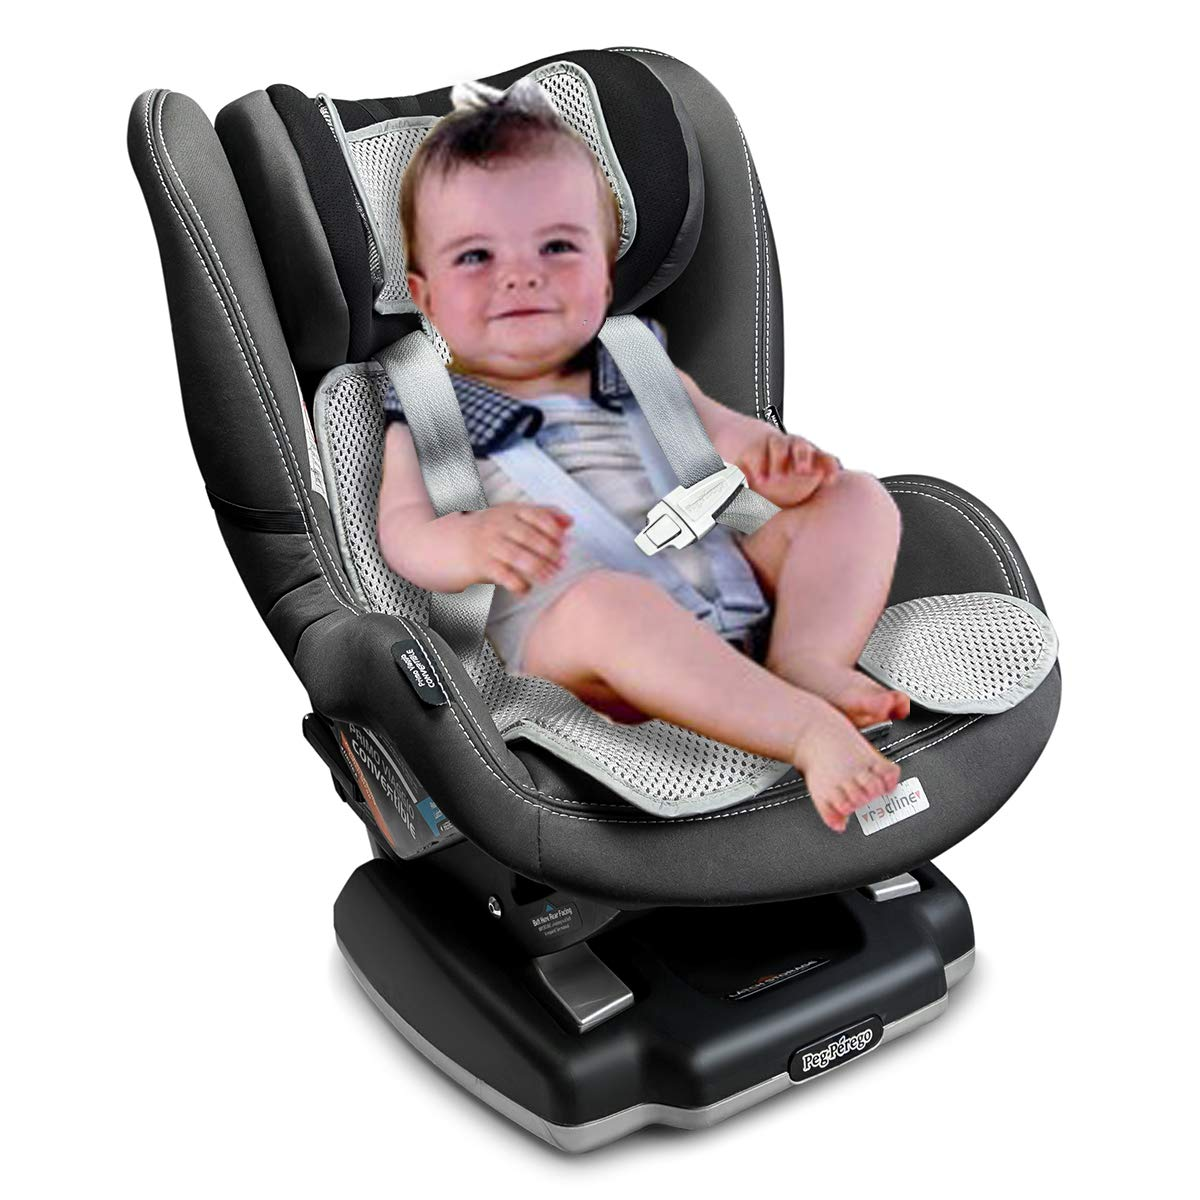 Lebogner 3D Air Mesh Cool Baby Seat Liner for Strollers, Car Seats, Jogger, Bouncer and More, Thick Cushion Seat Pad Protector, Supports Newborns, Infants, and Toddlers, Installs Quick and Easy, Grey by lebogner (Image #6)